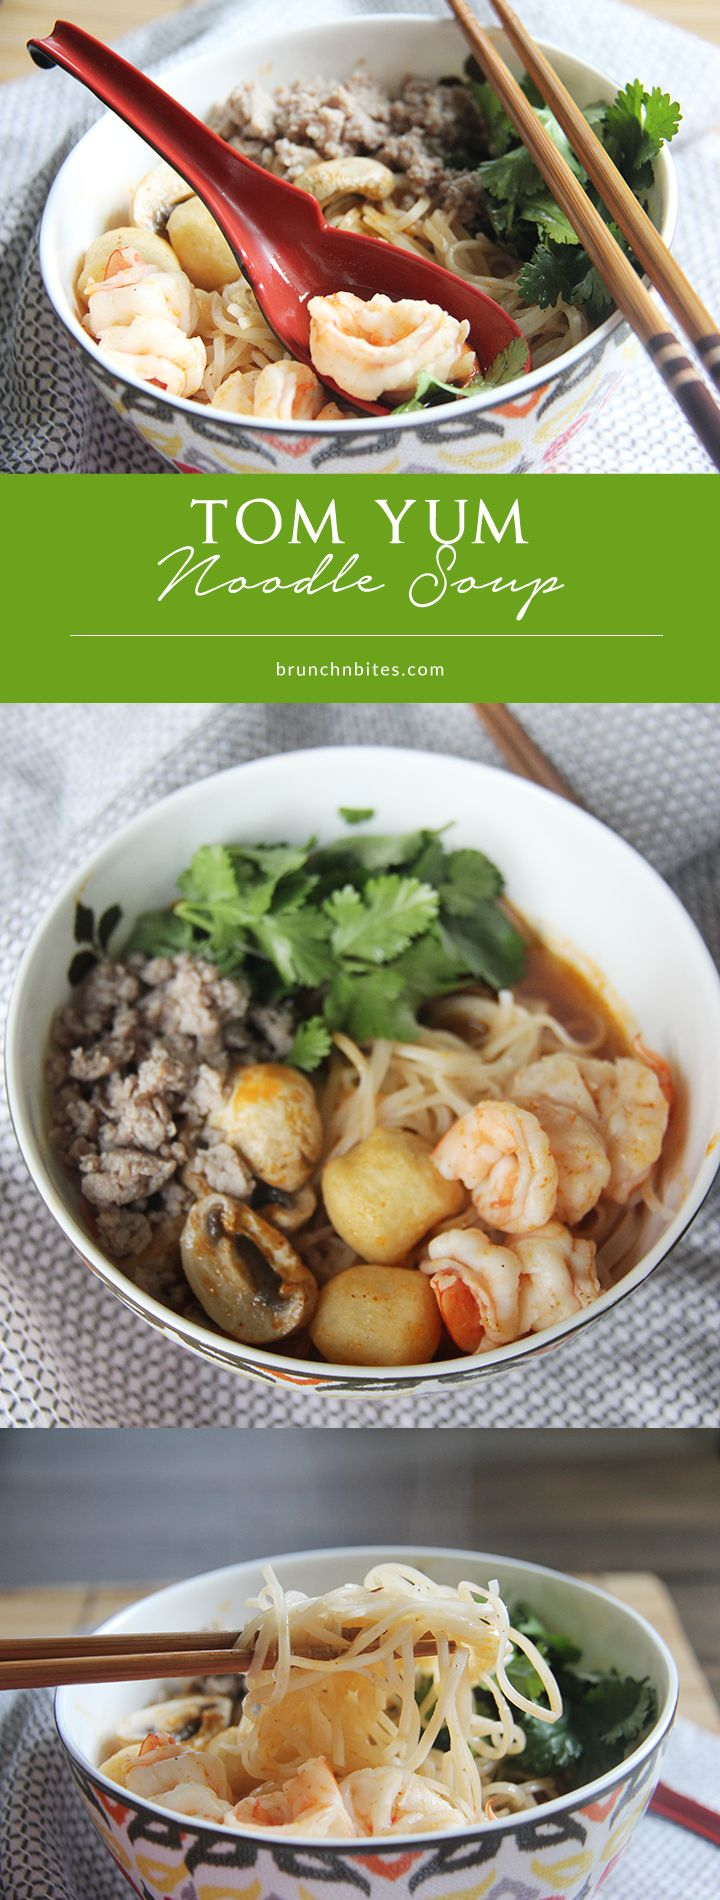 This spicy, aromatic Tom Yum Noodle Soup is a savory way to warm up your evening. Slurpy comforting!